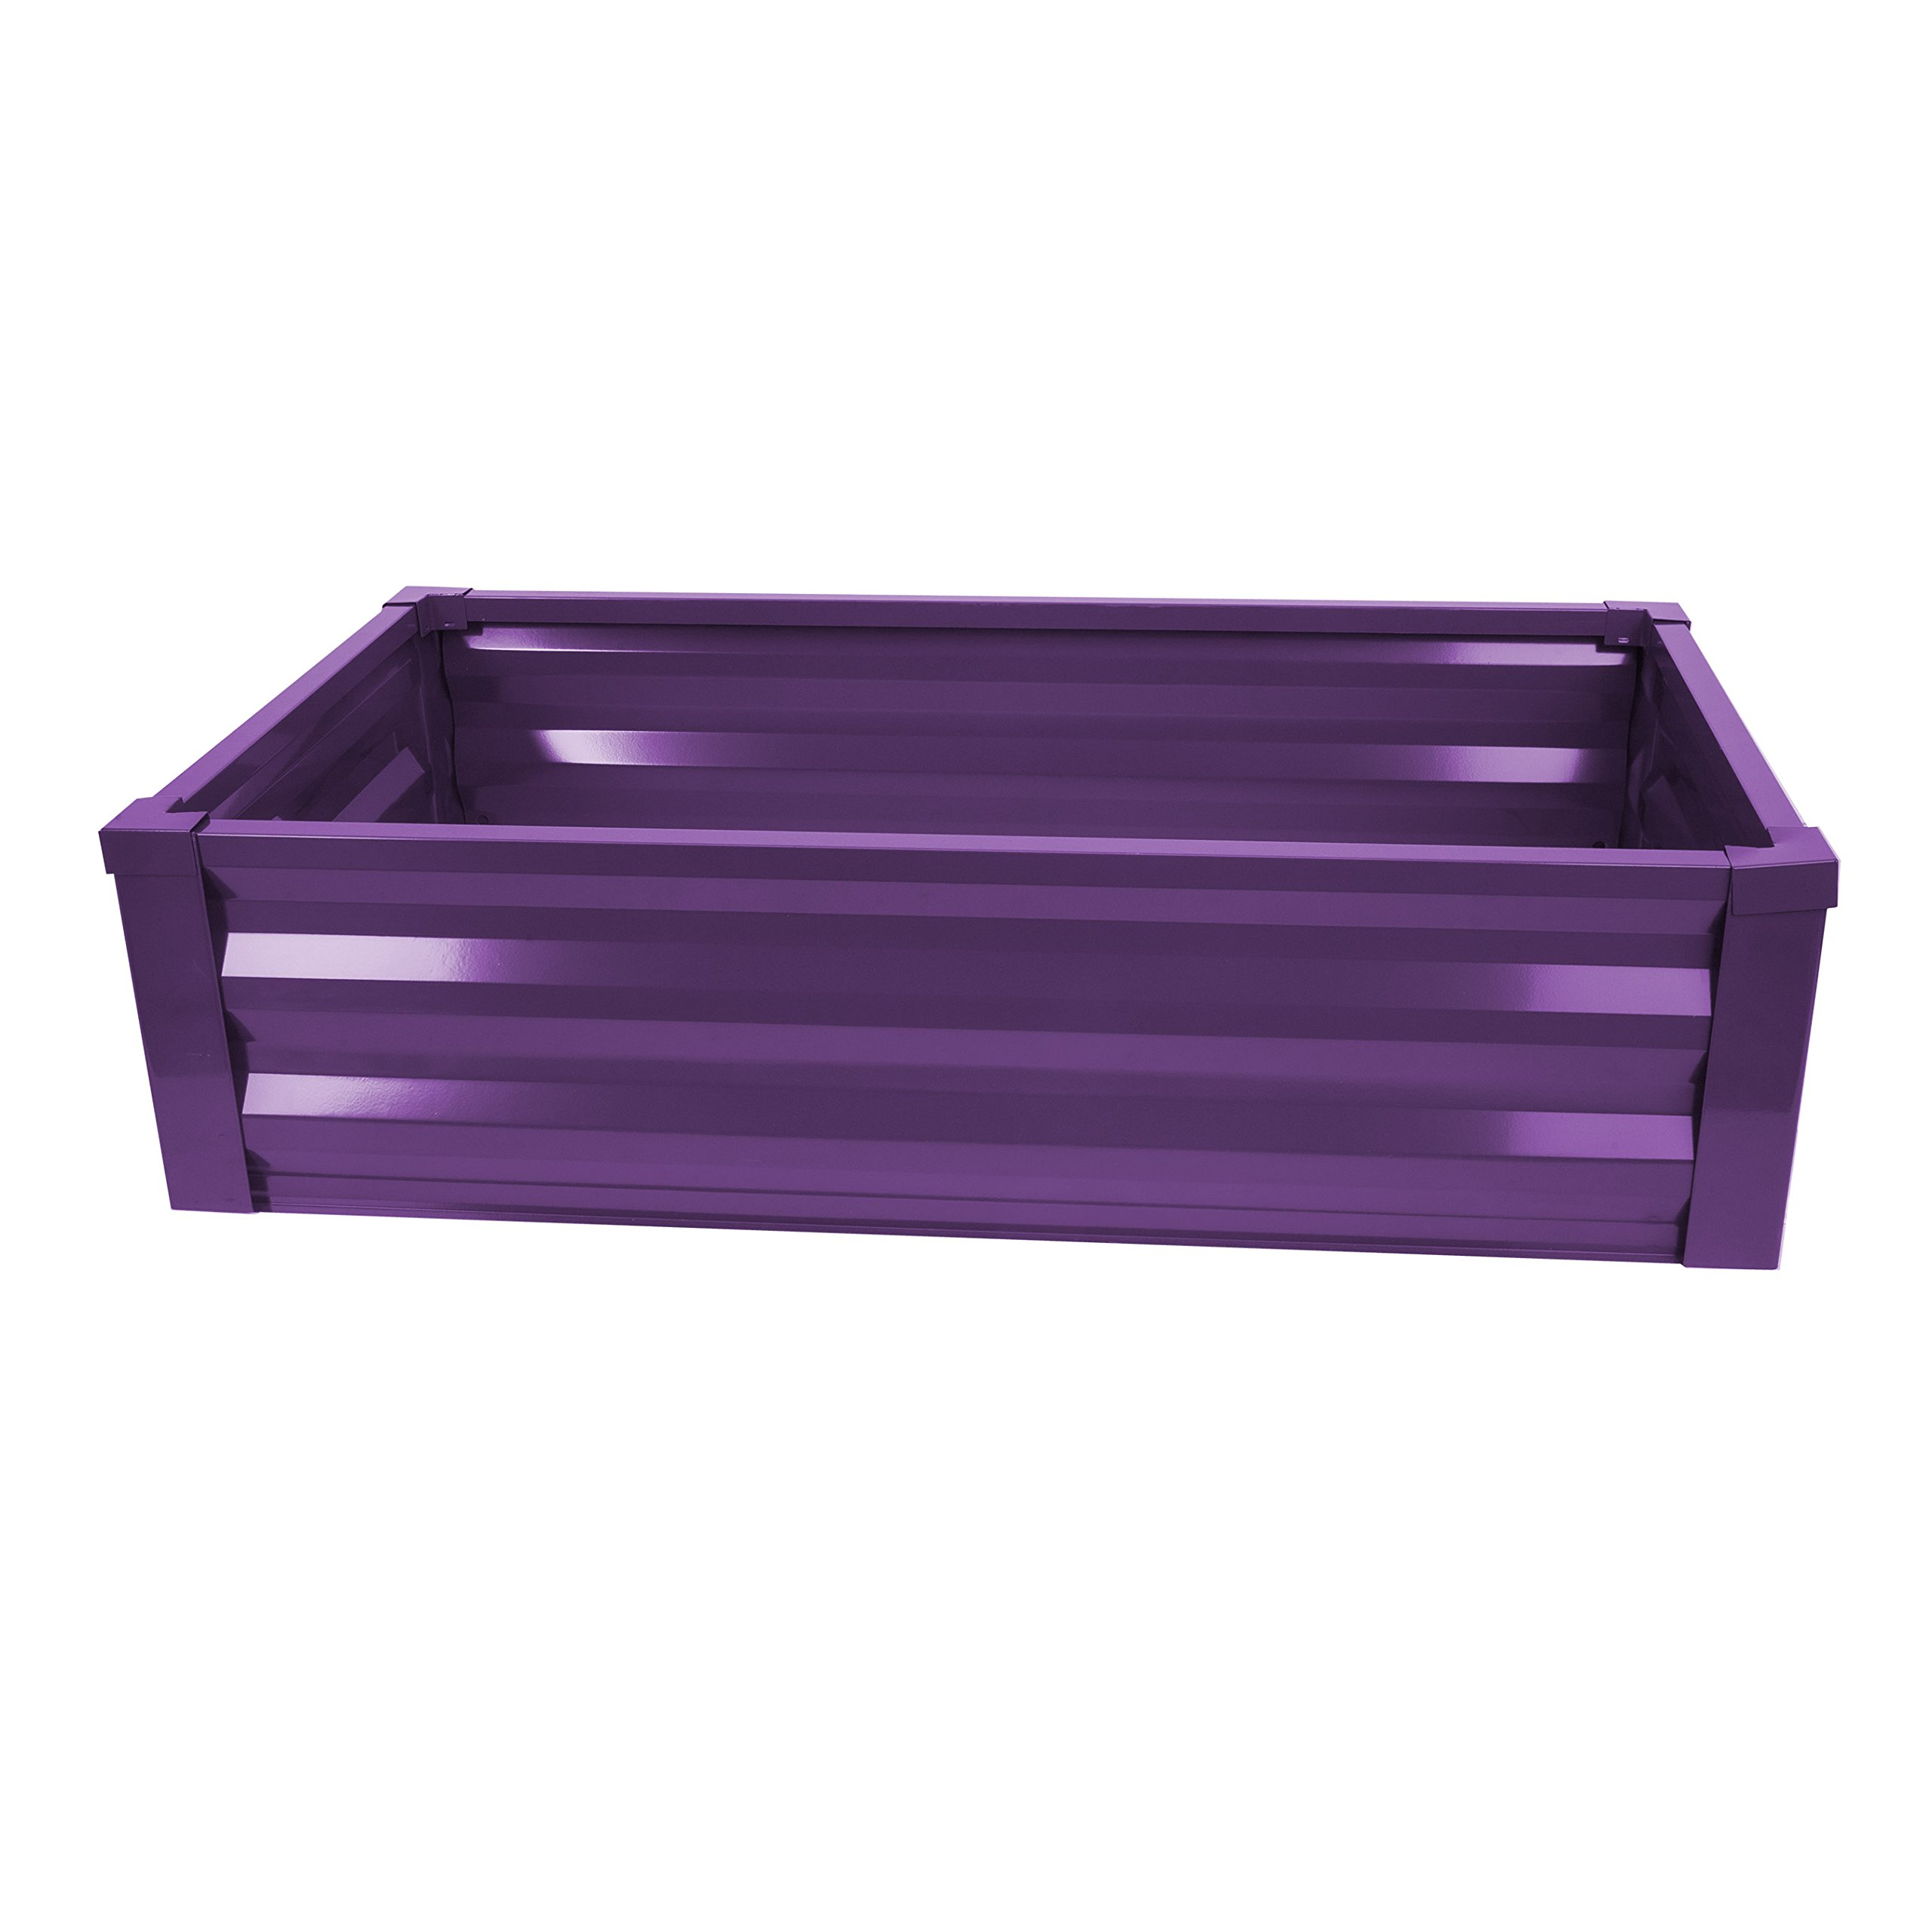 Greenes Fence Powder-Coated Metal Raised Garden Bed Planter 24'' W x 48'' L x 12'' H by Greenes Fence